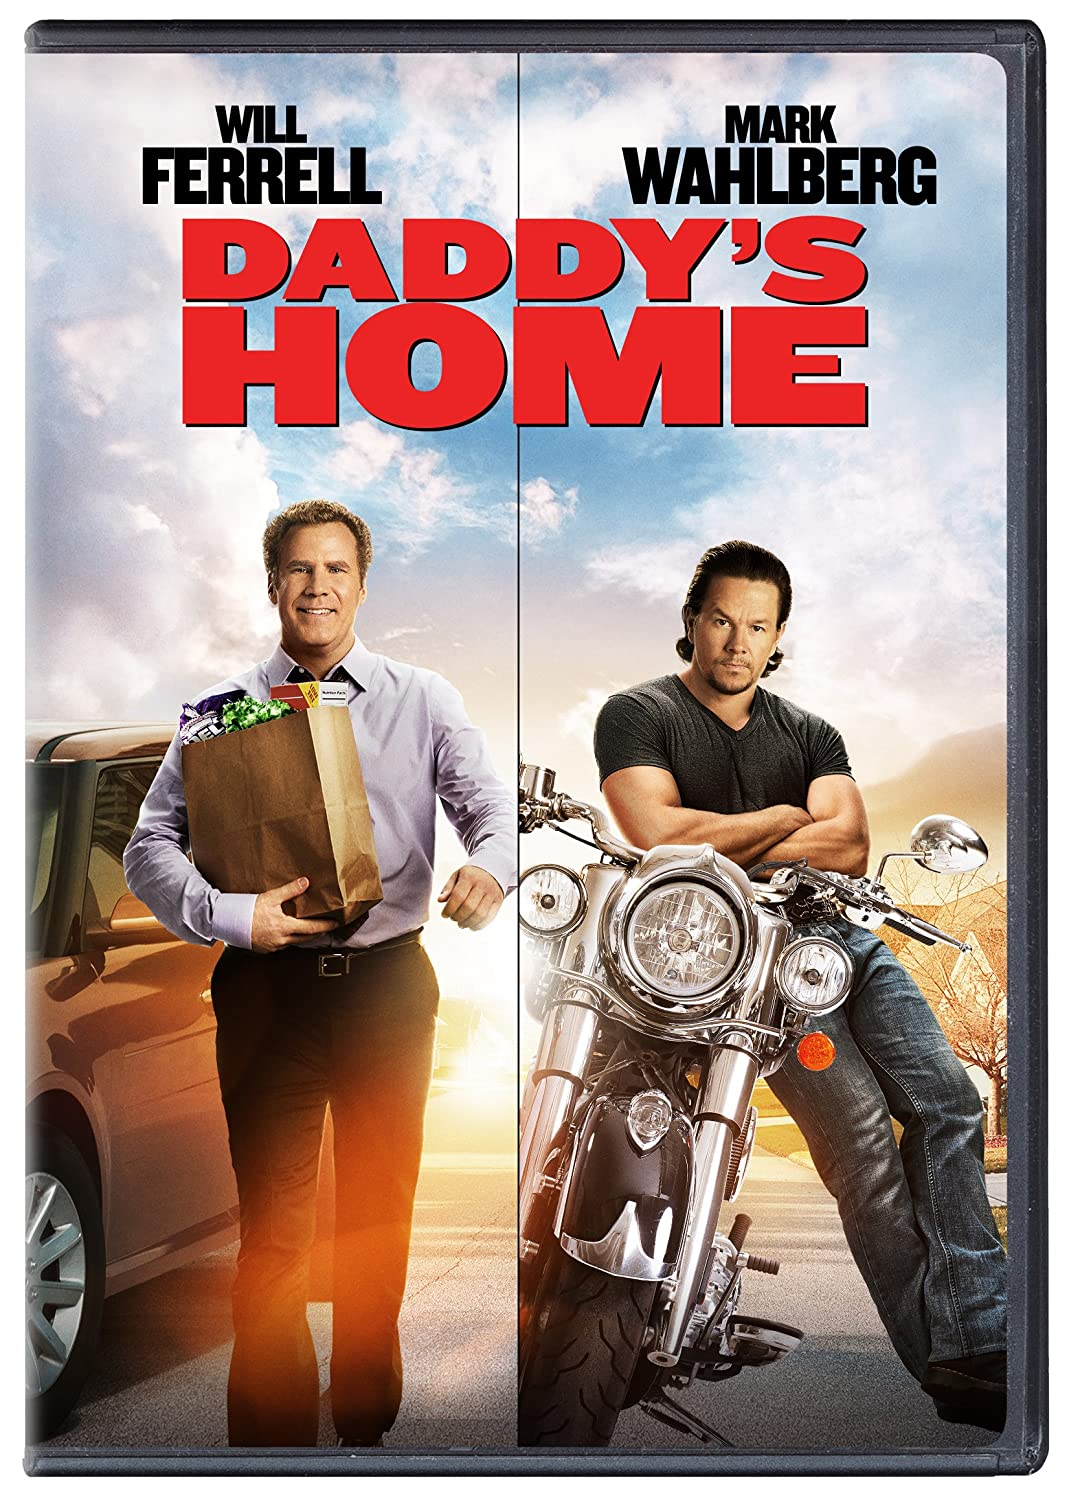 Amazon.com: Daddy's Home: Will Ferrell, Mark Wahlberg, Thomas ...